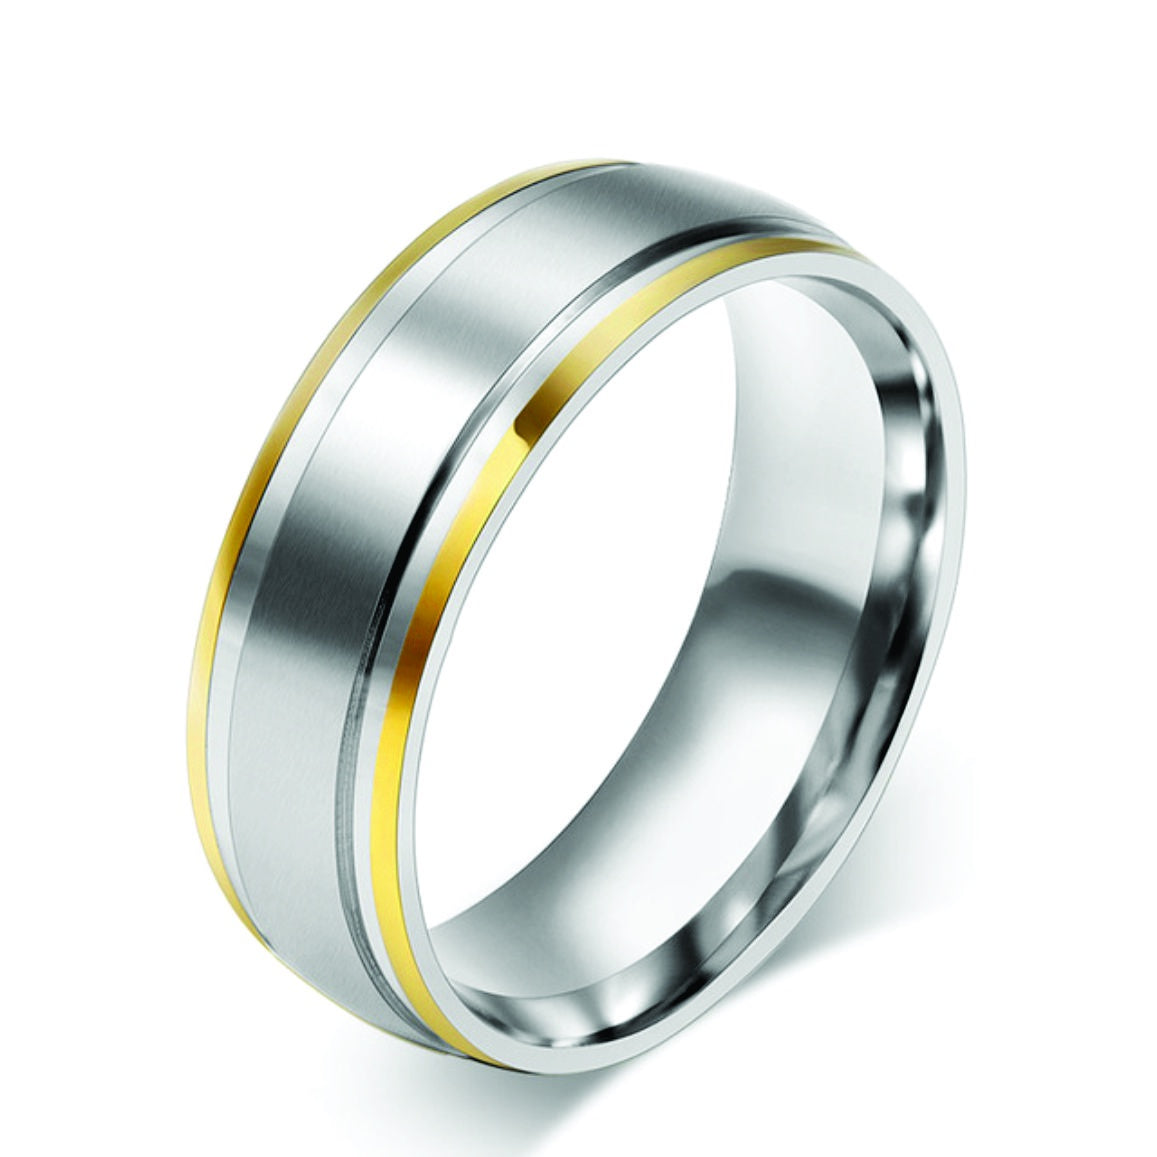 Stainless Steel with Gold Edge Ring